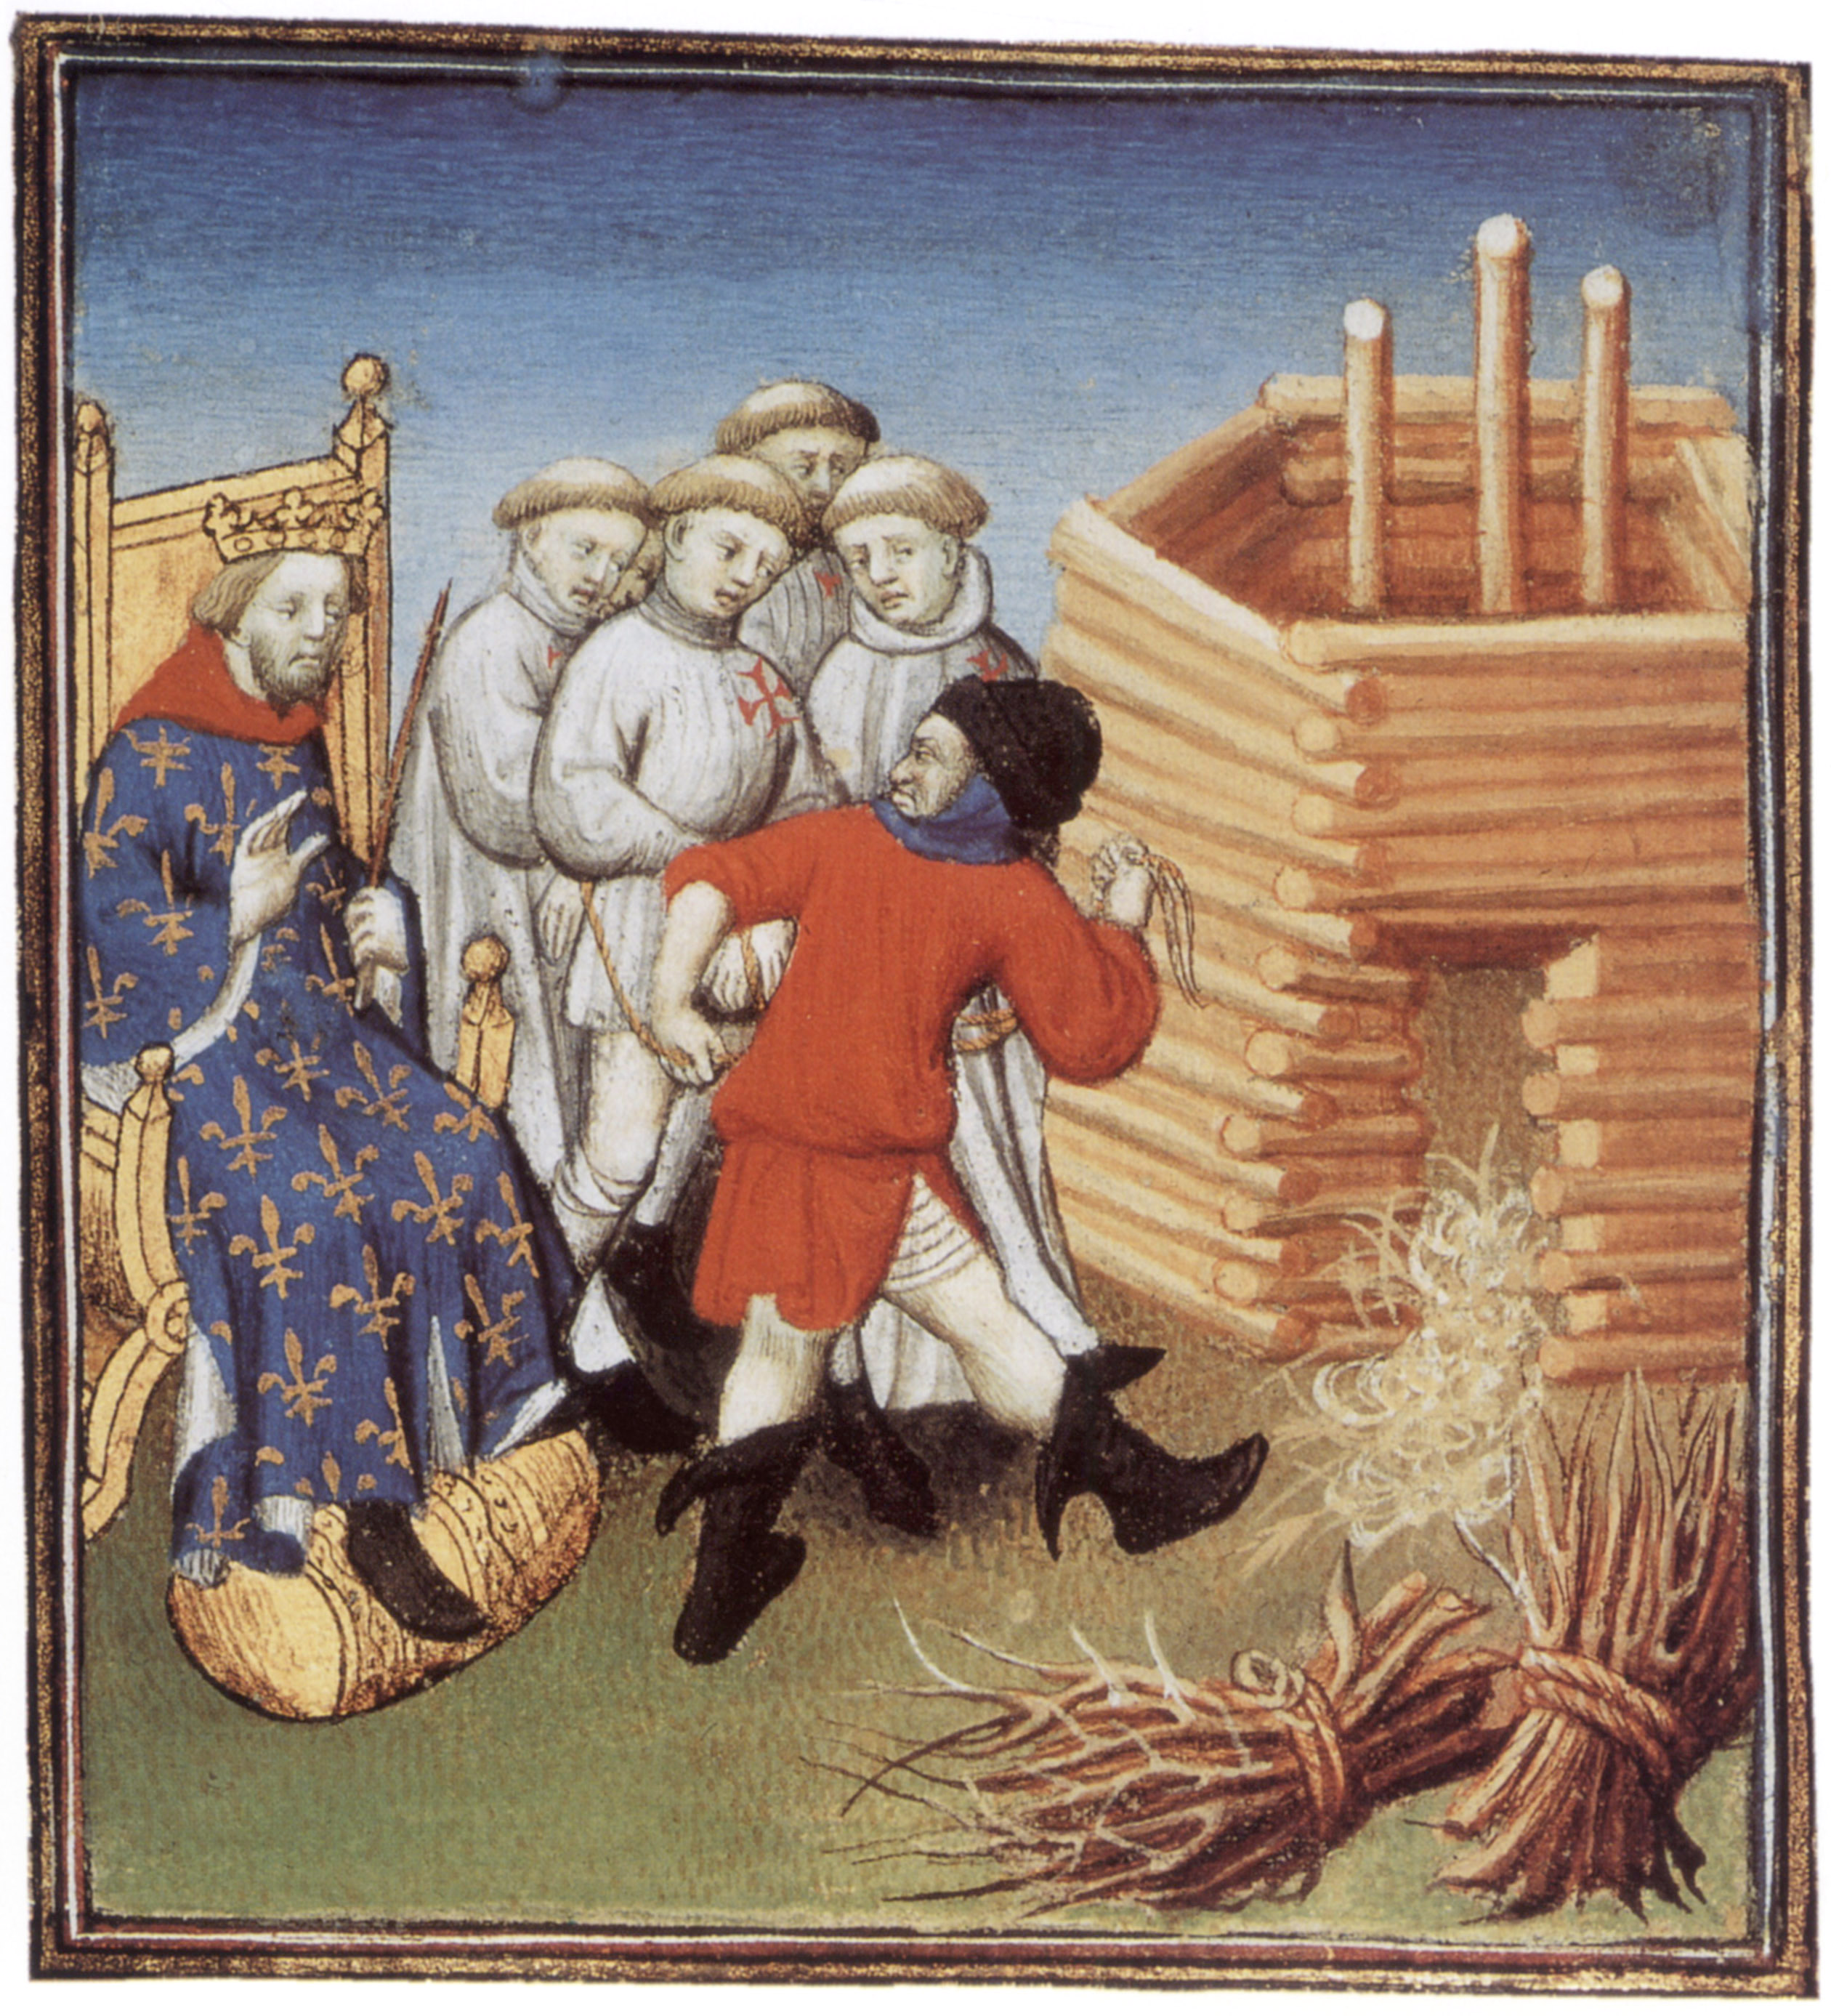 Templars are going to be executed under look of french king Philippe IV le Bel in 1310, illumination